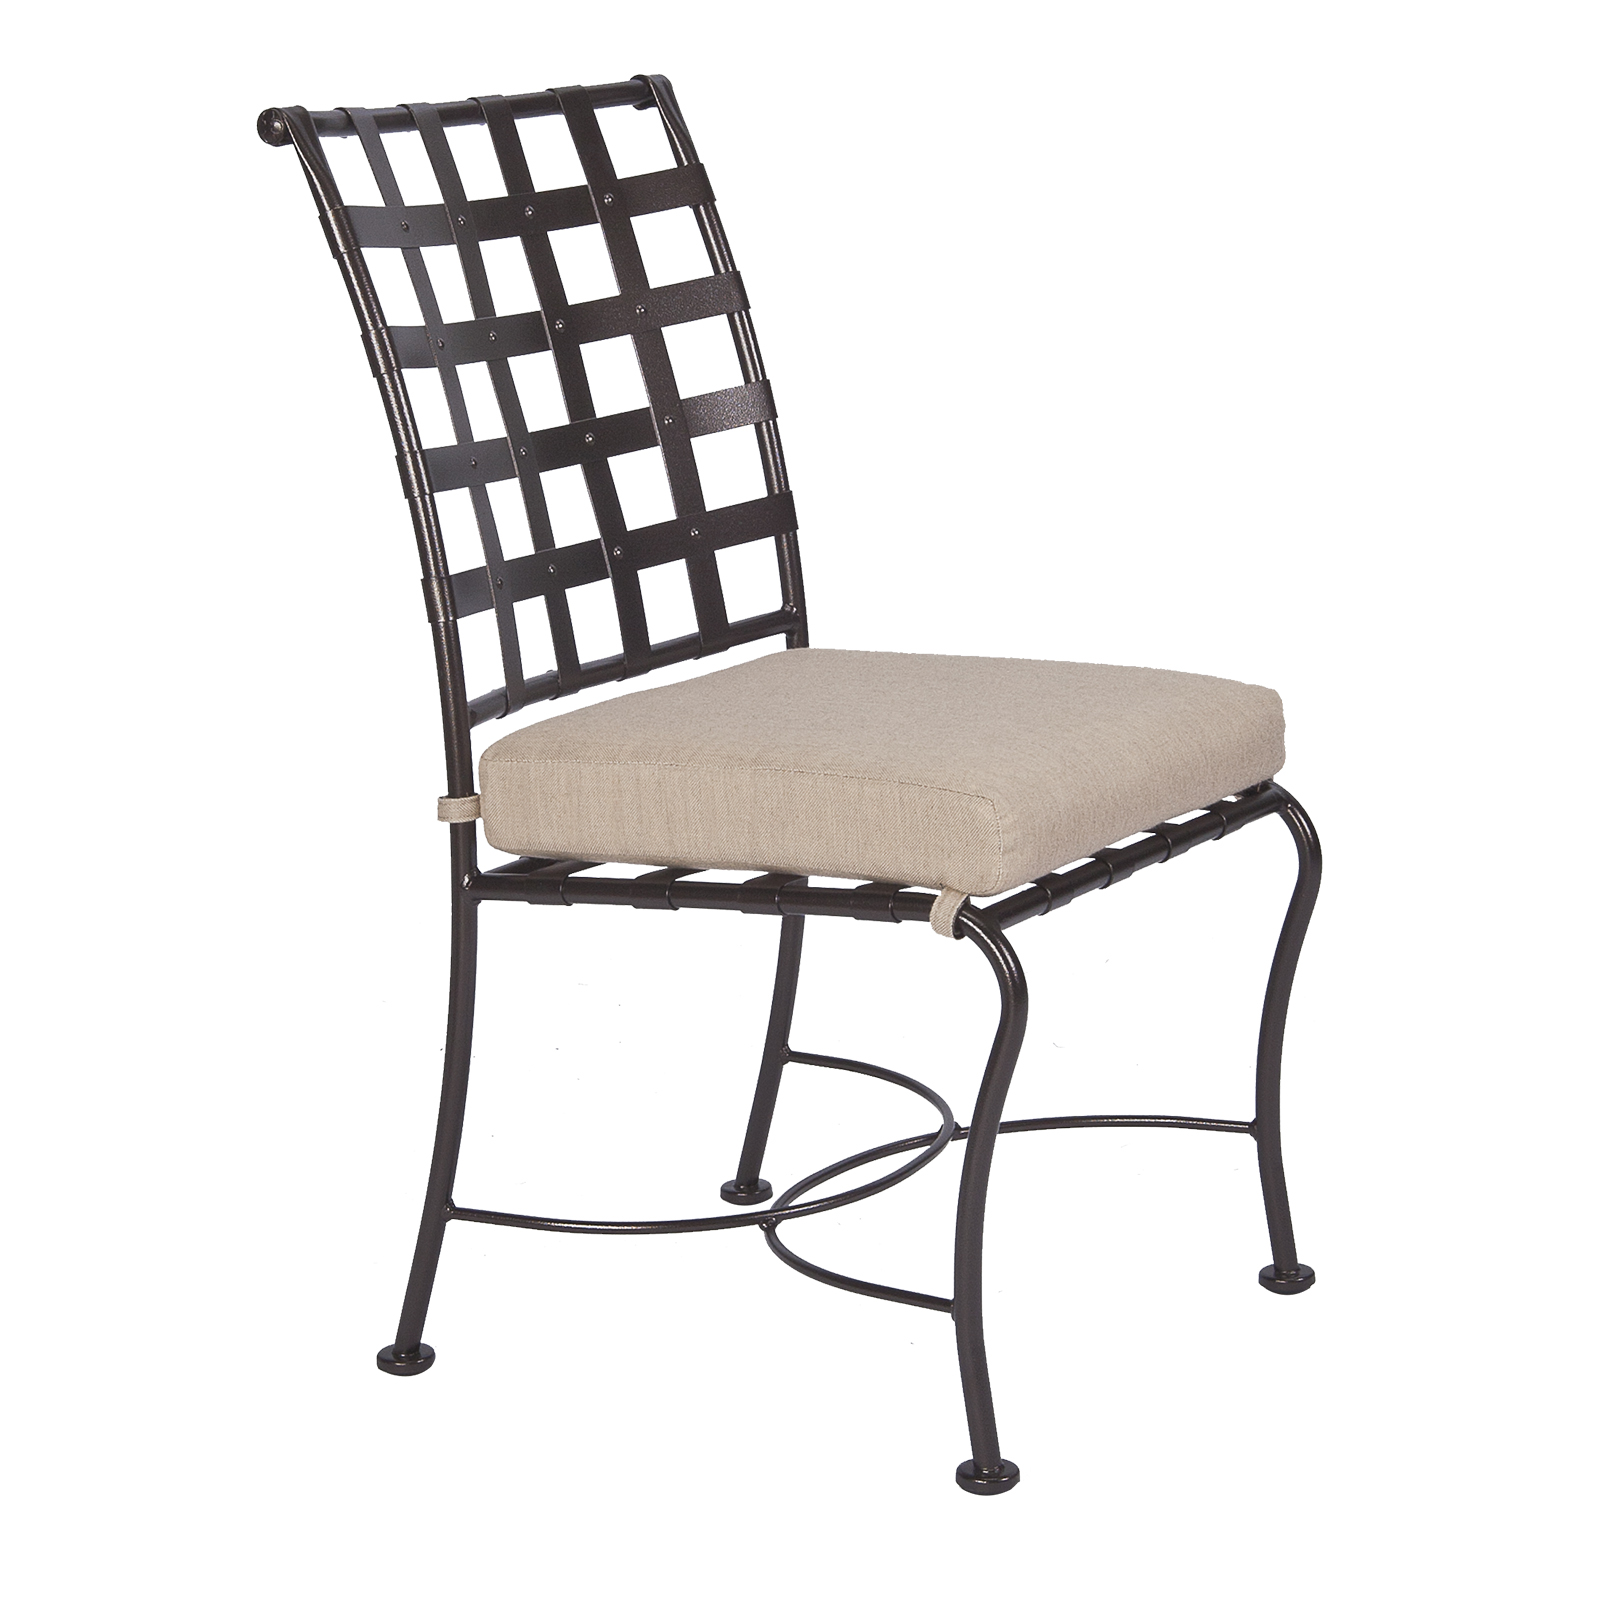 Dining-Side-Chair-951-S_Catalog_GR35_1600-Classico-W-OW-Lee